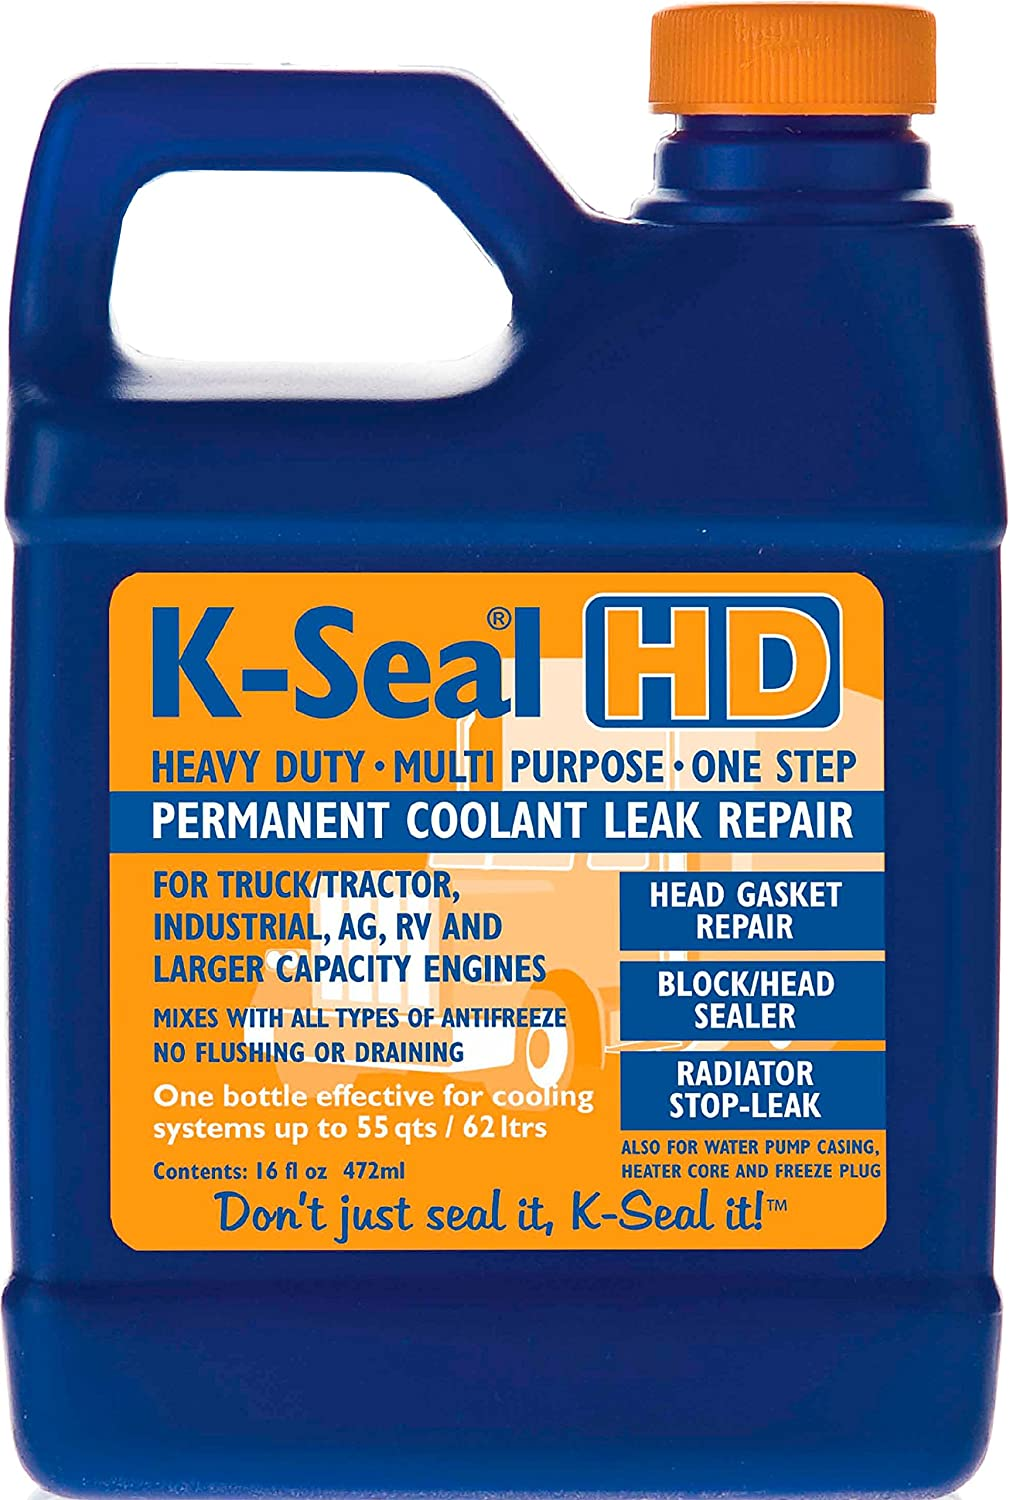 K-Seal Multi Purpose One Step Permanent Coolant Leak Repair